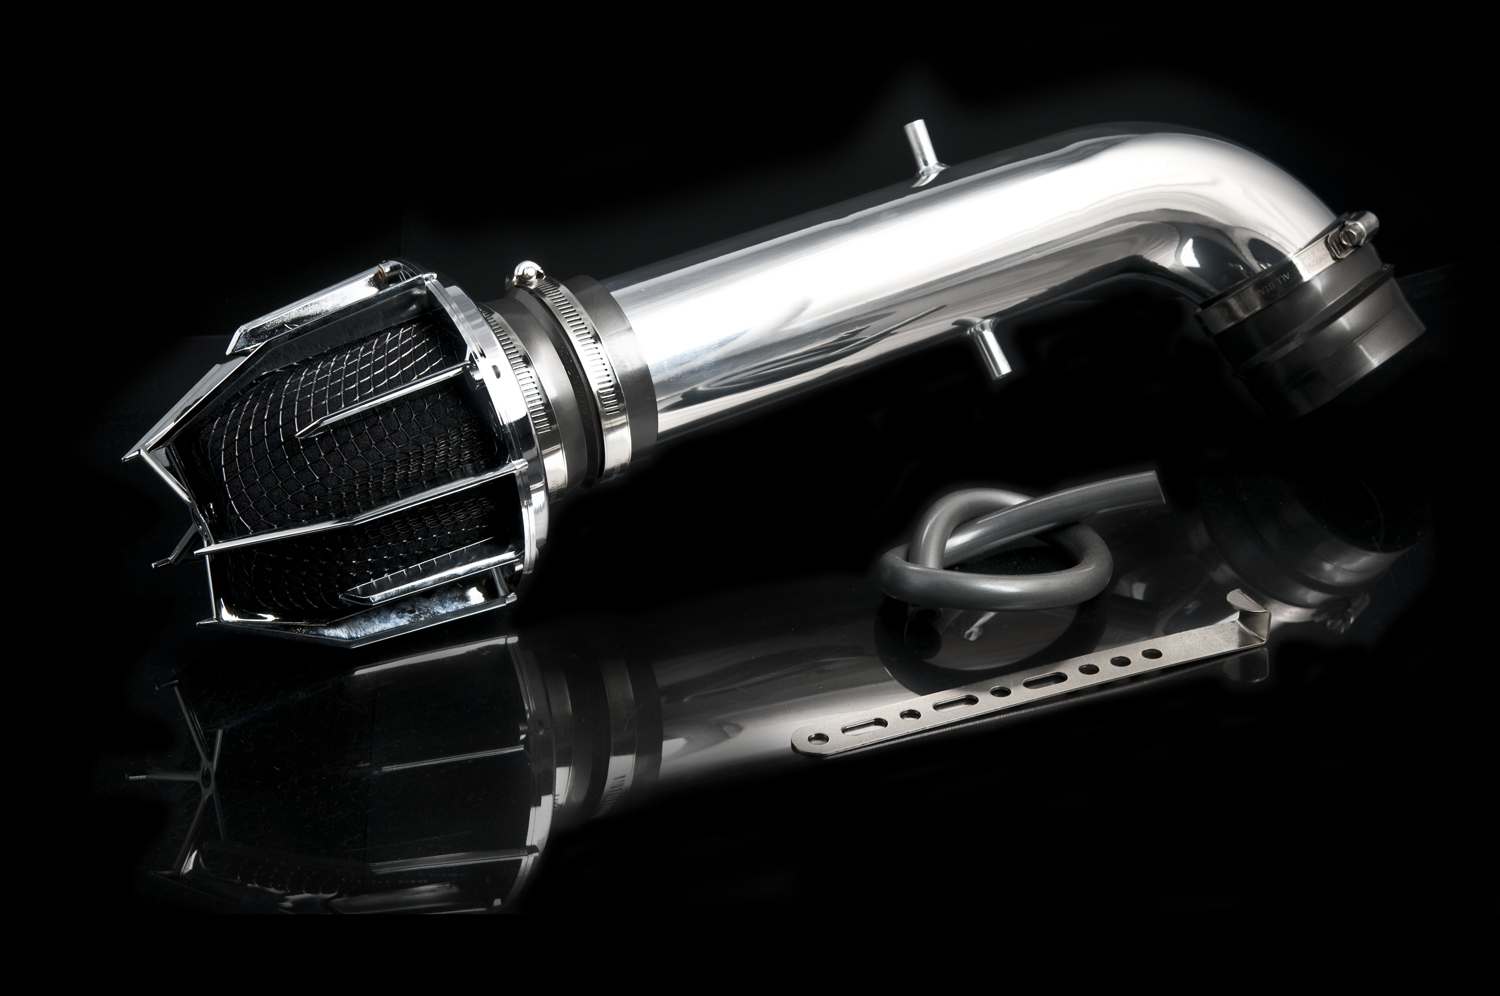 Honda Pilot V6 2003-2006 Weapon-R Dragon Air Intake